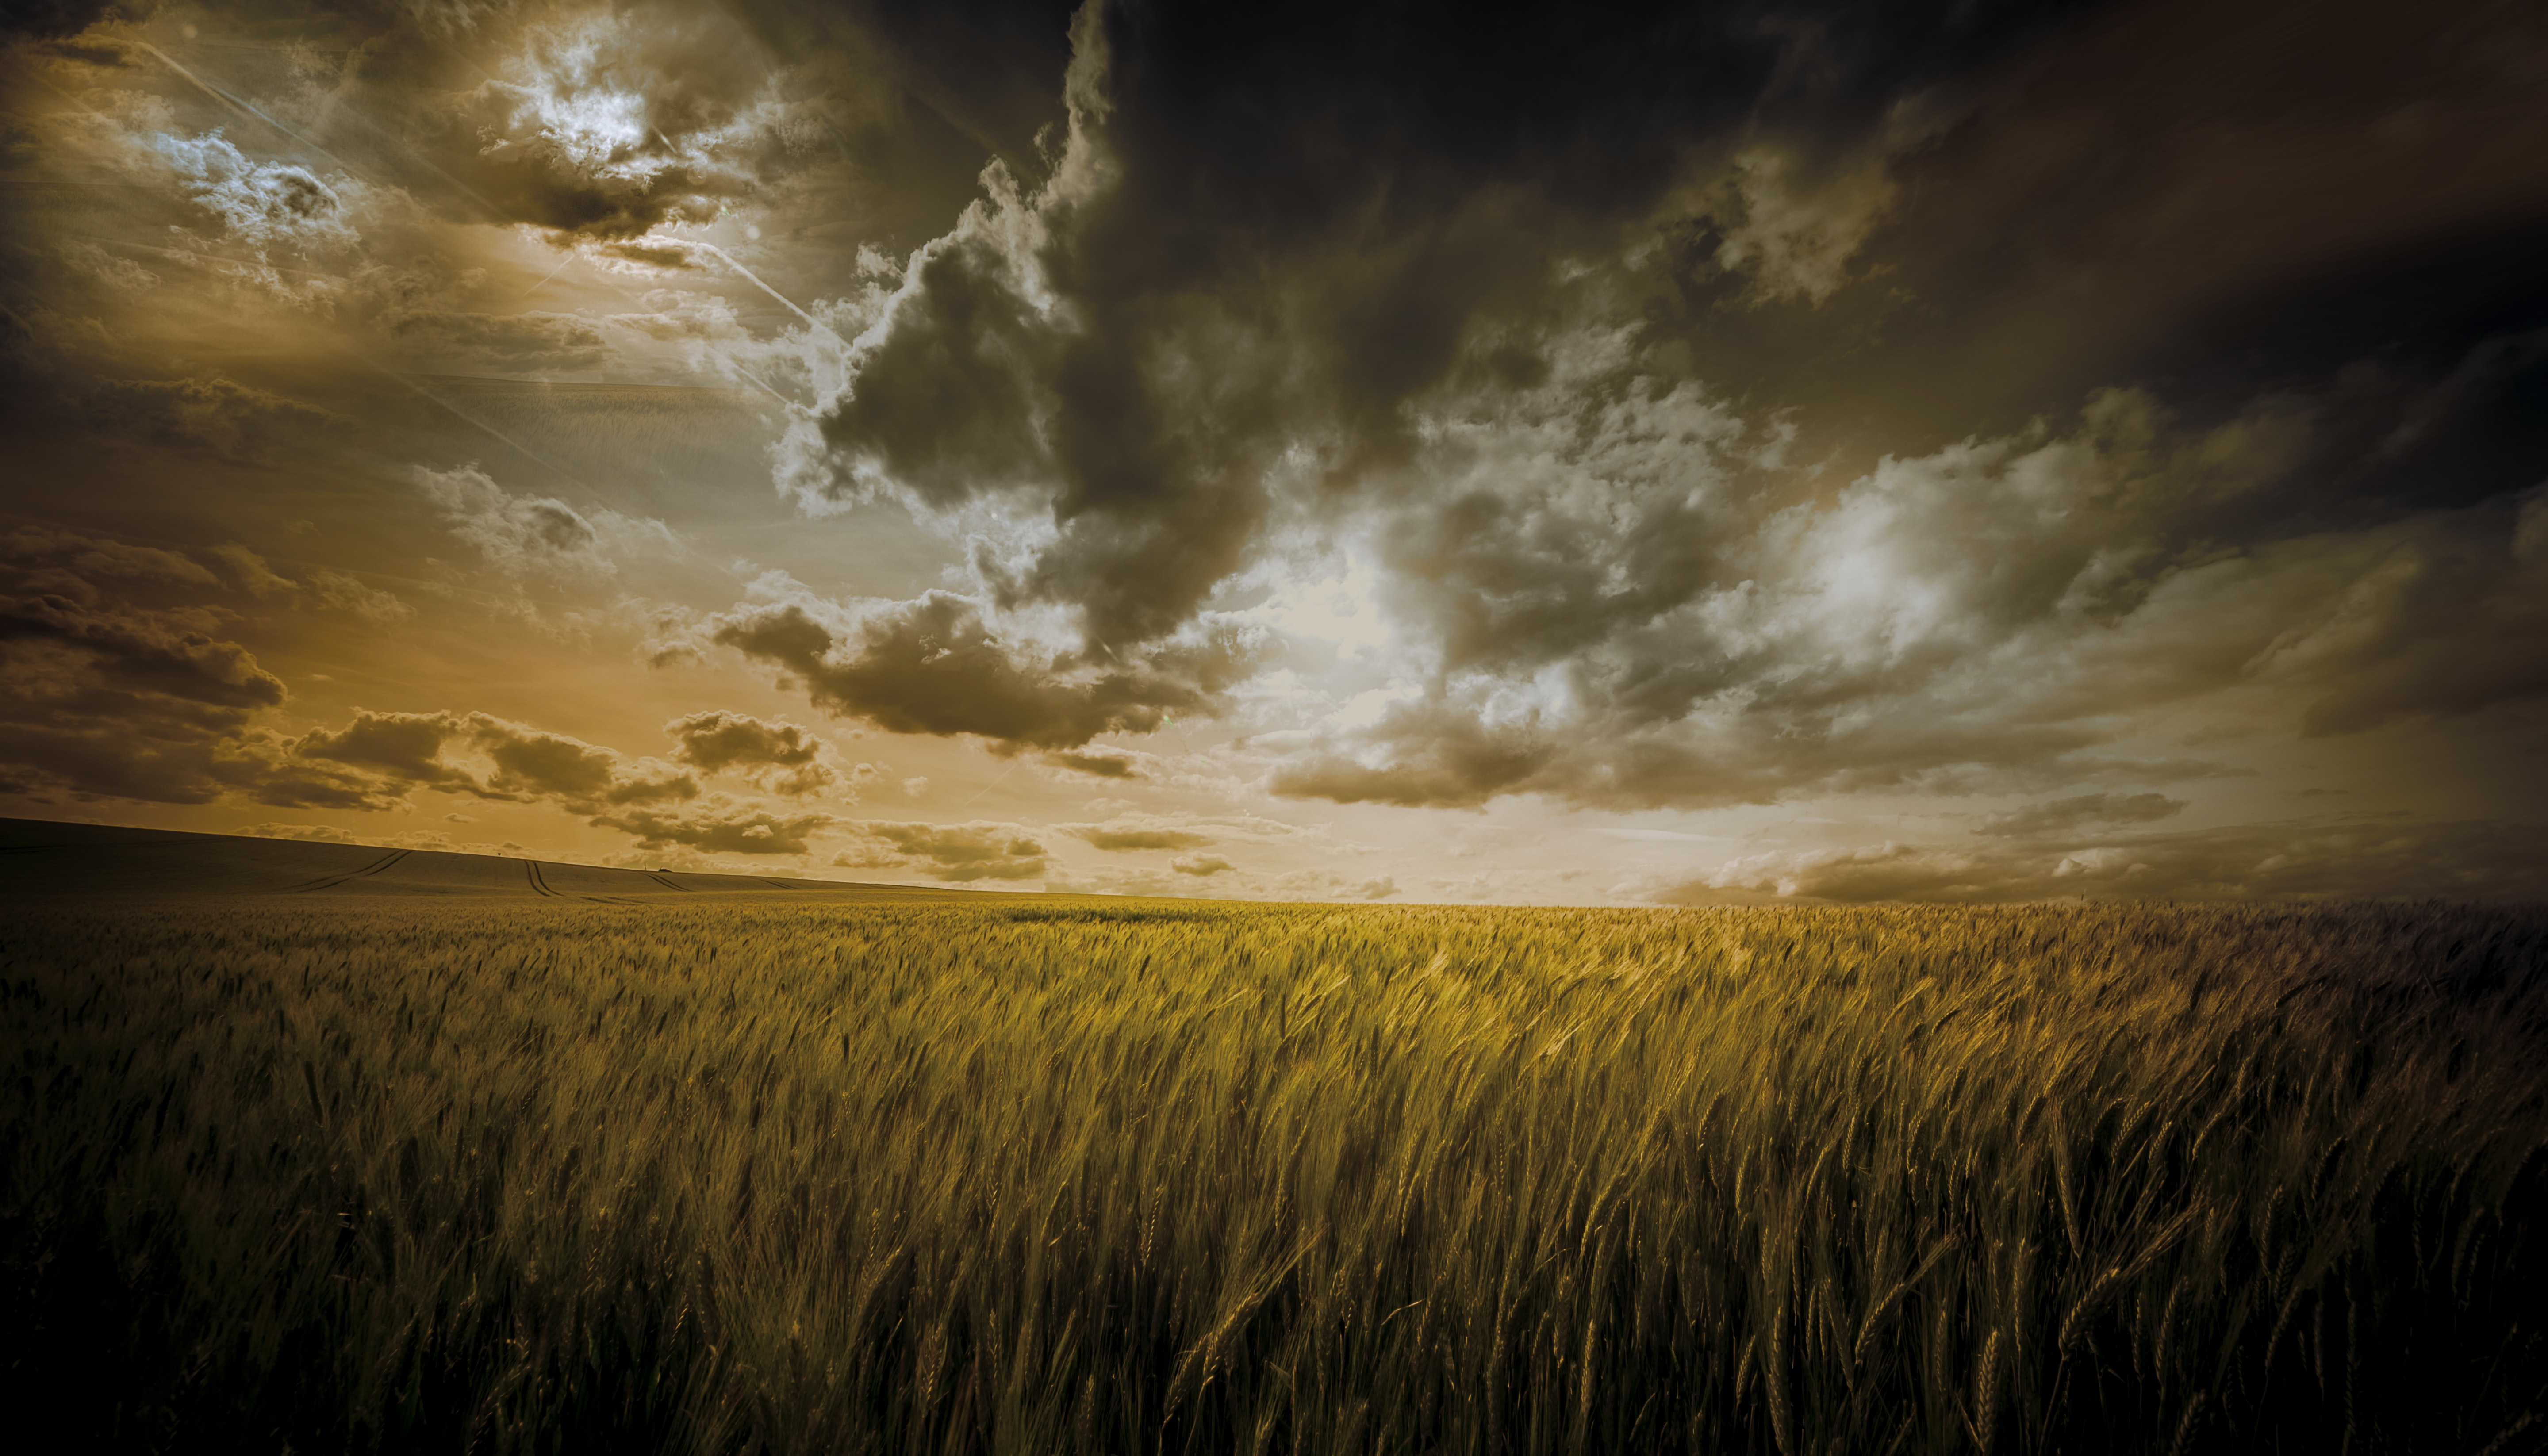 wheat field under cloudy sky